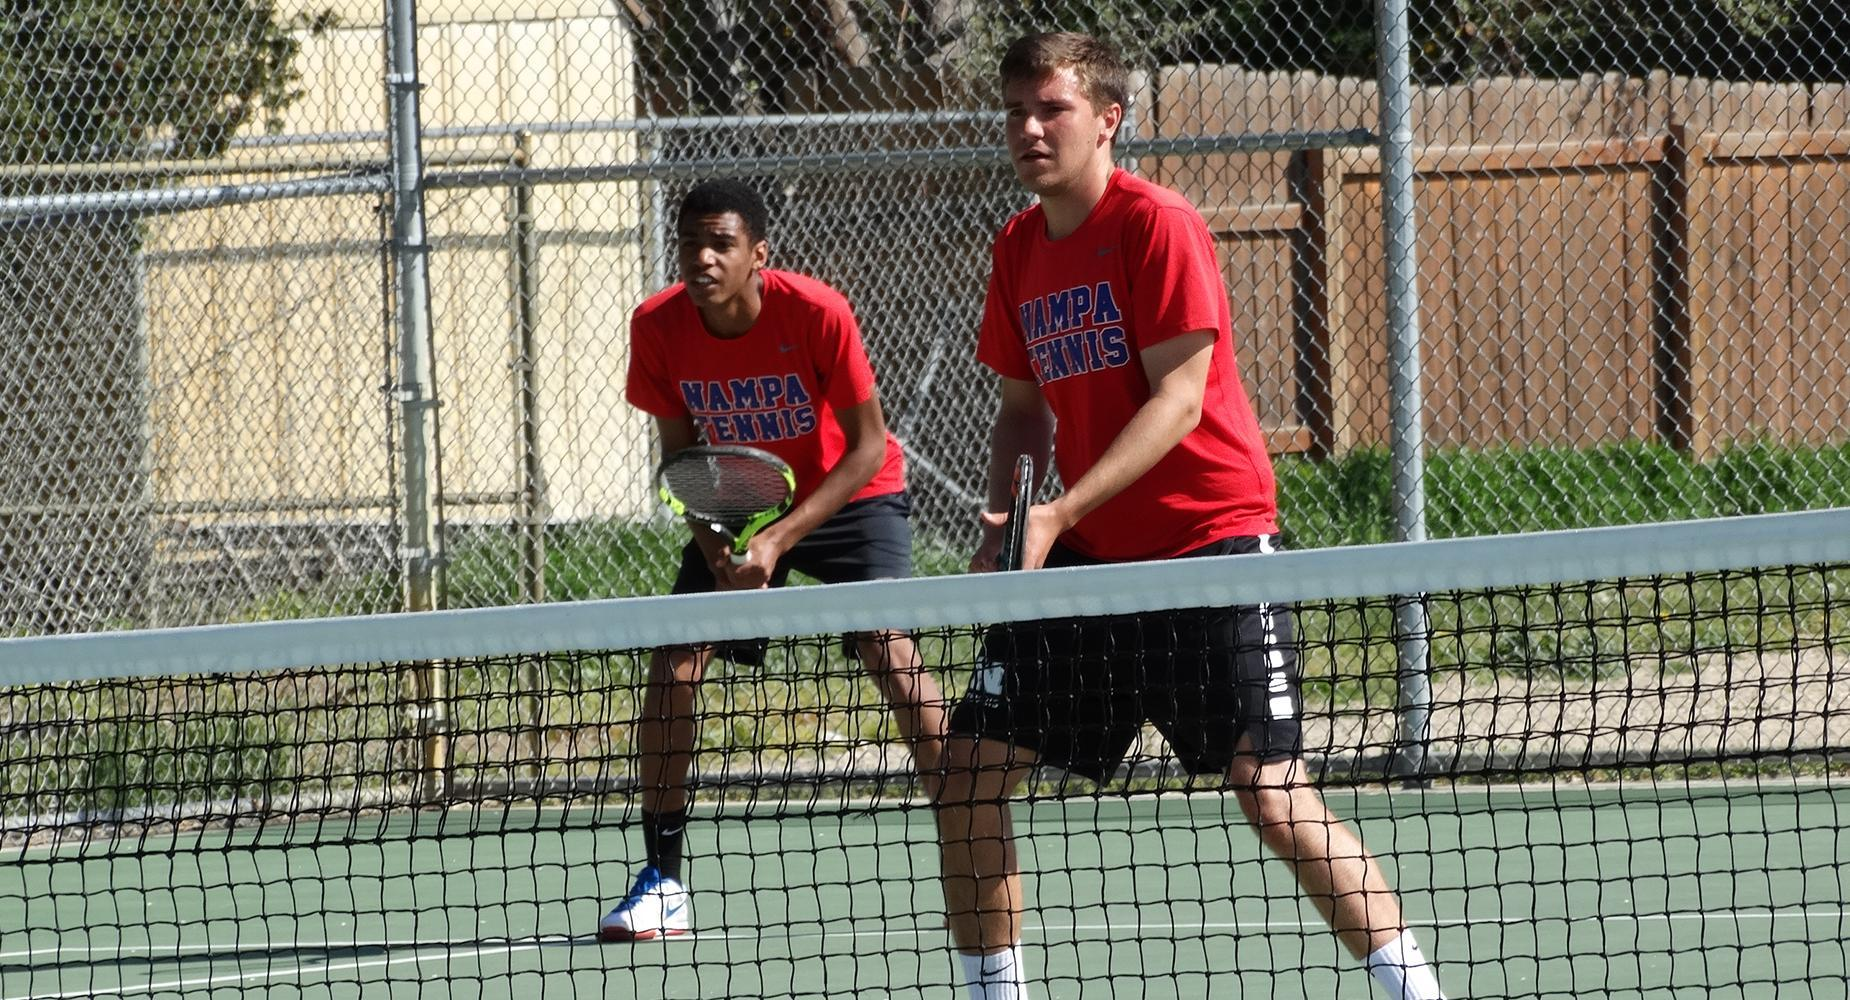 NHS tennis players in a double match